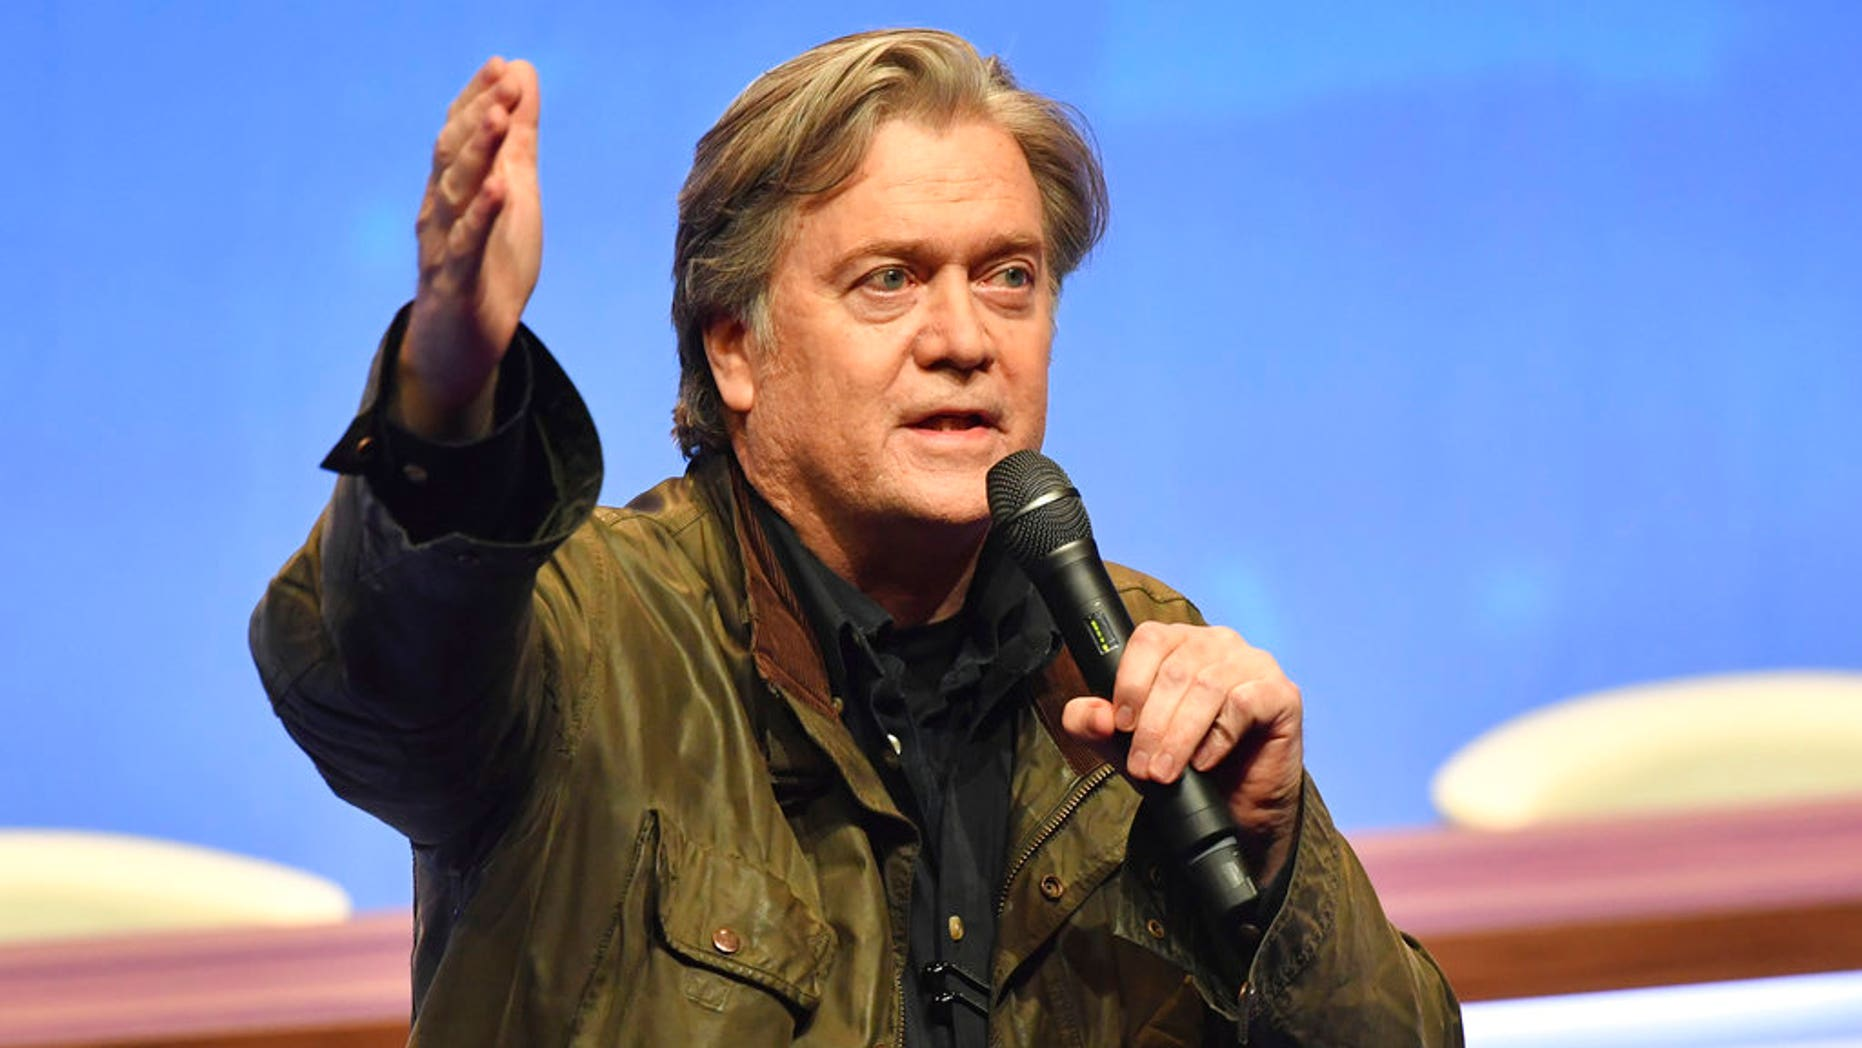 Former White House strategist Steve Bannon addresses members of the French far-right National Front at a party congress in Lille, France, March 10, 2018.